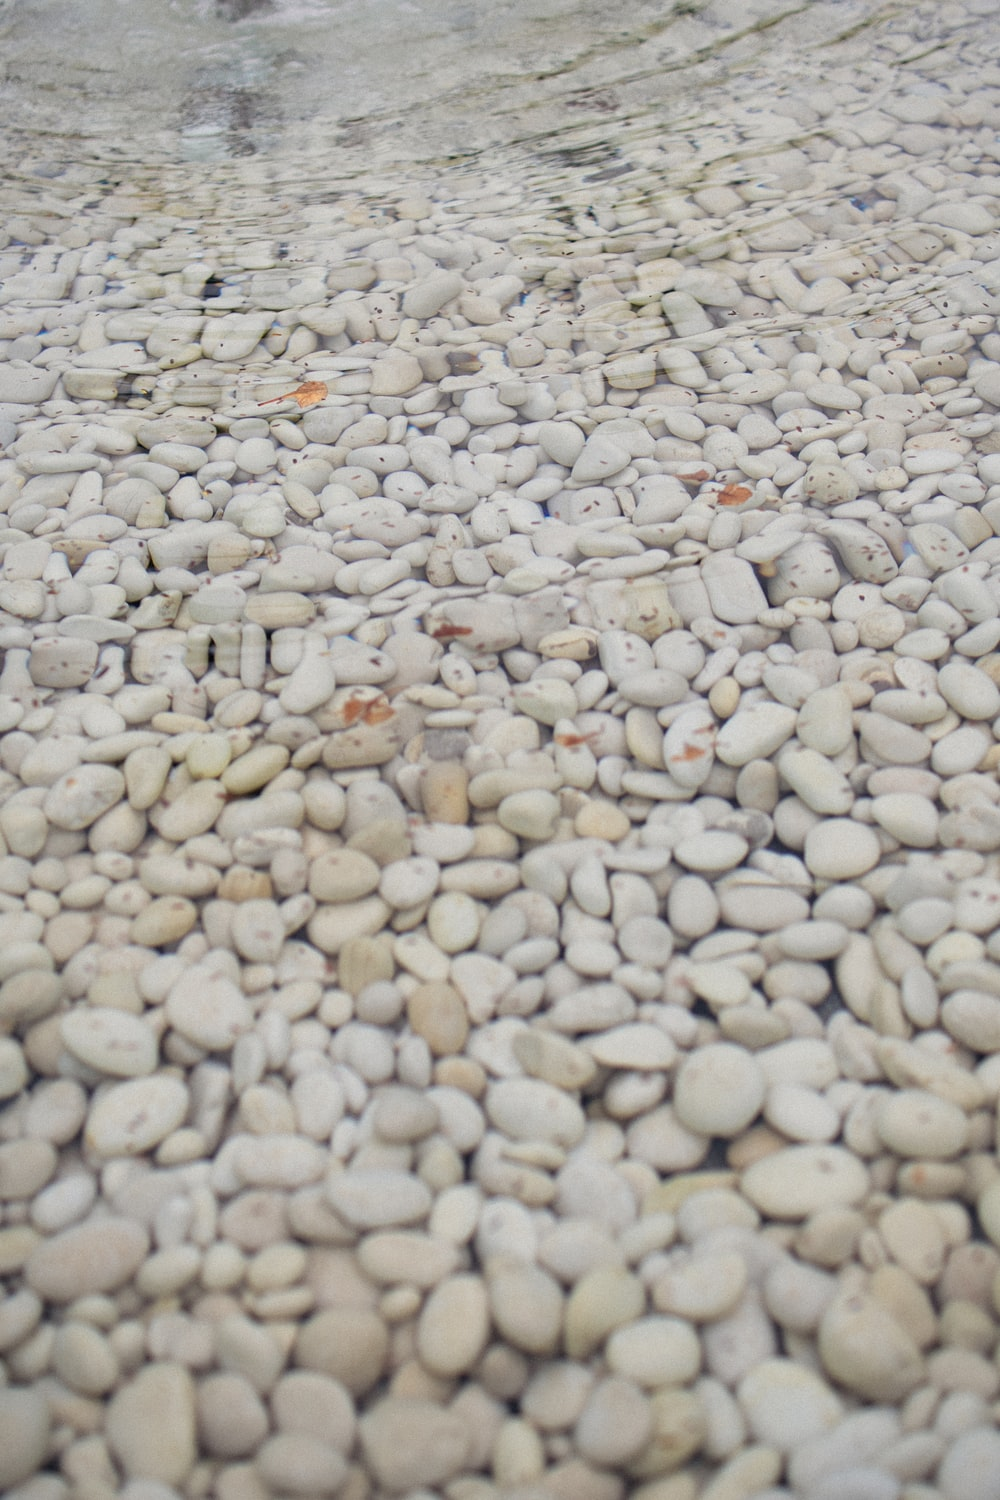 white and gray pebbles on the beach